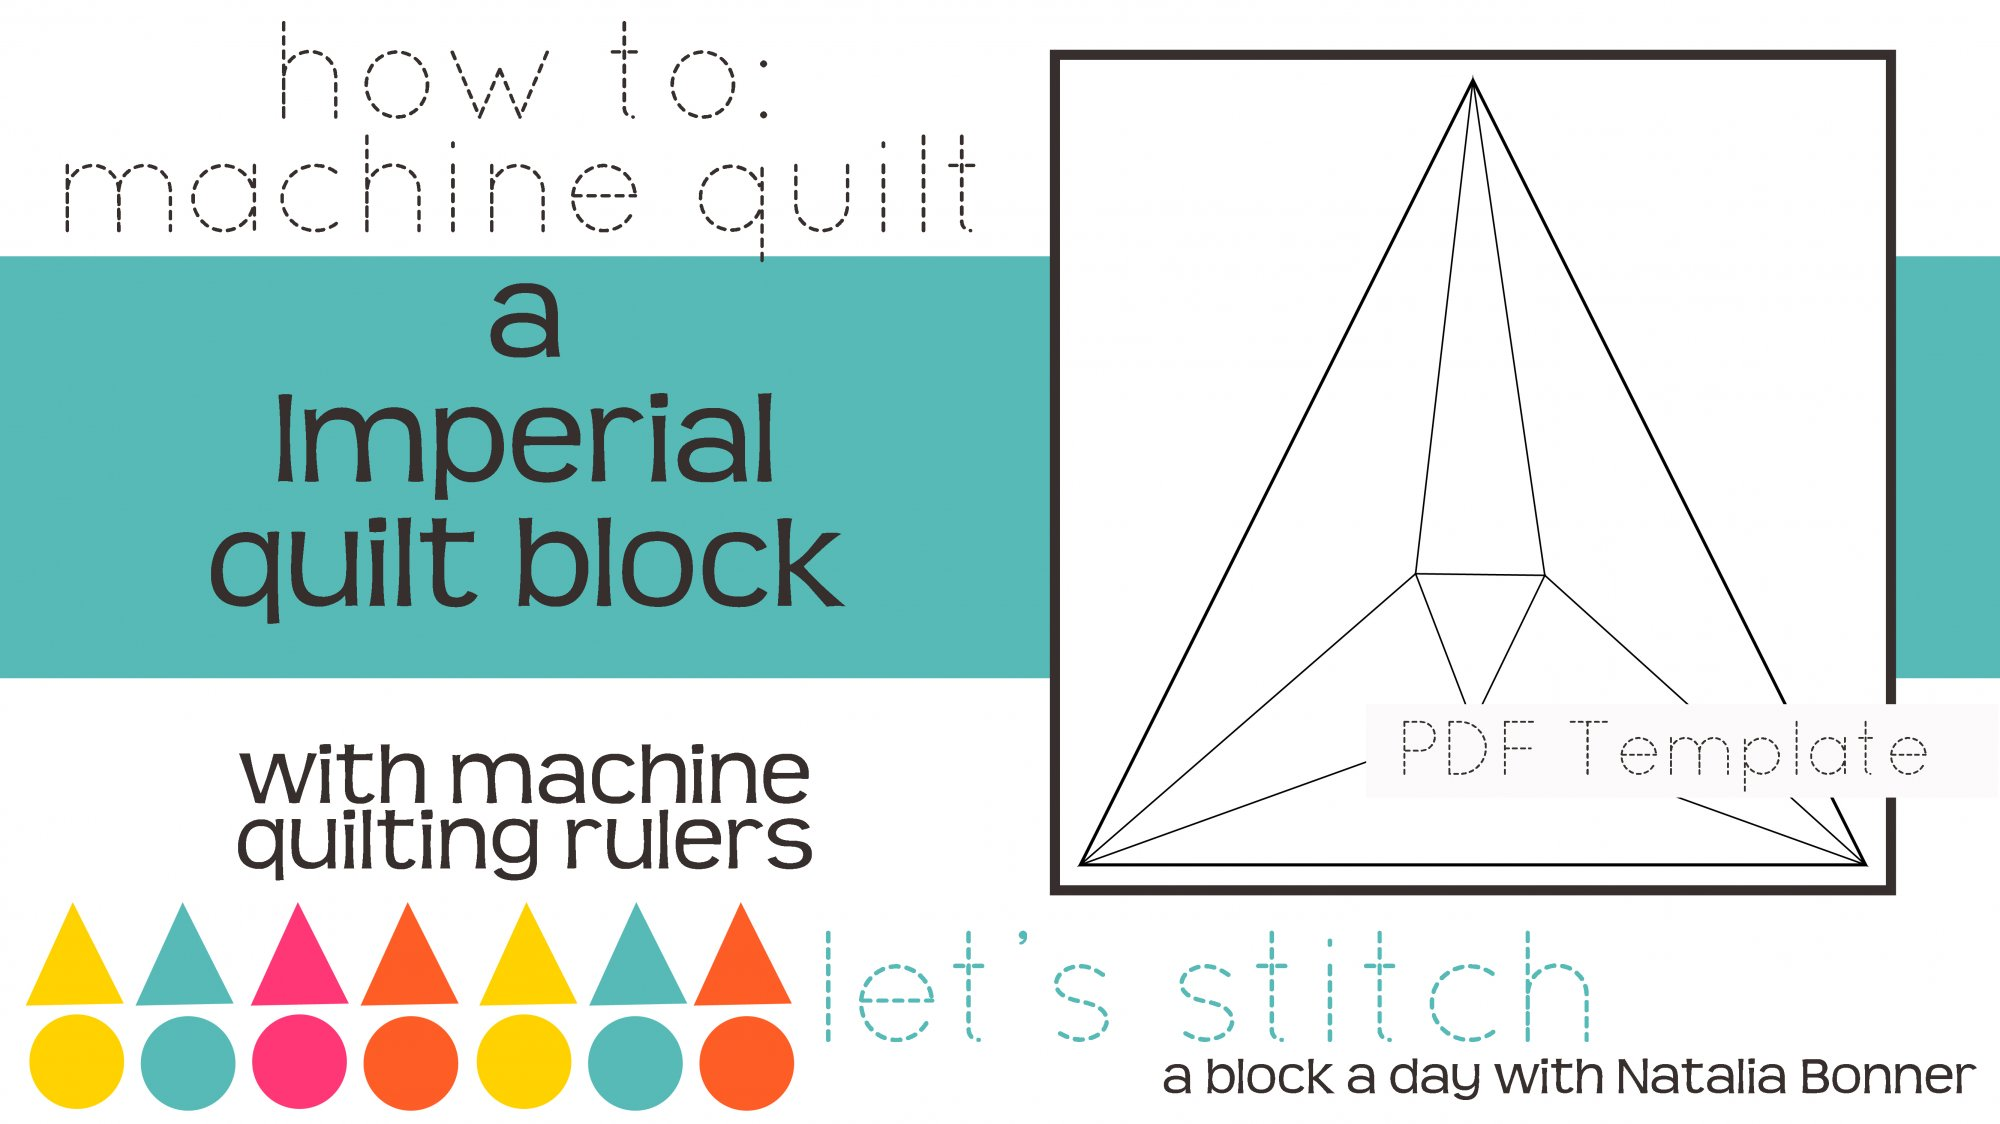 Let's Stitch - A Block a Day With Natalia Bonner - PDF - Imperial